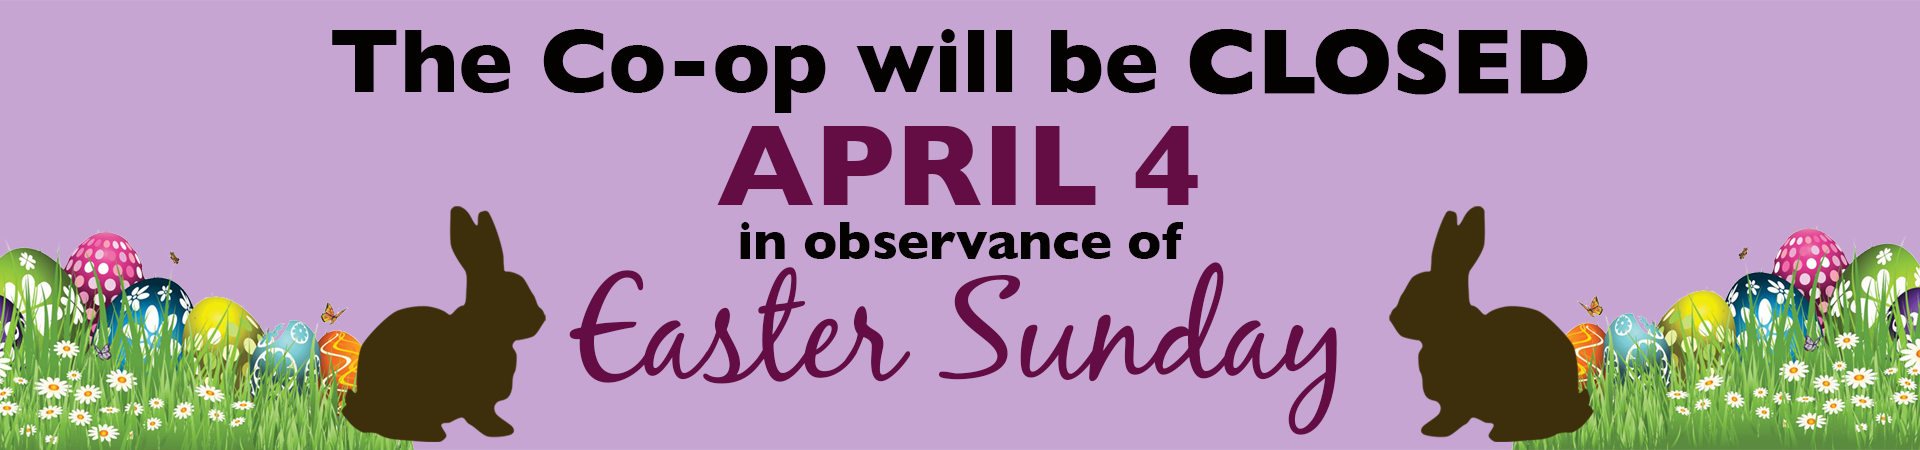 Co-op Closed Easter Sunday